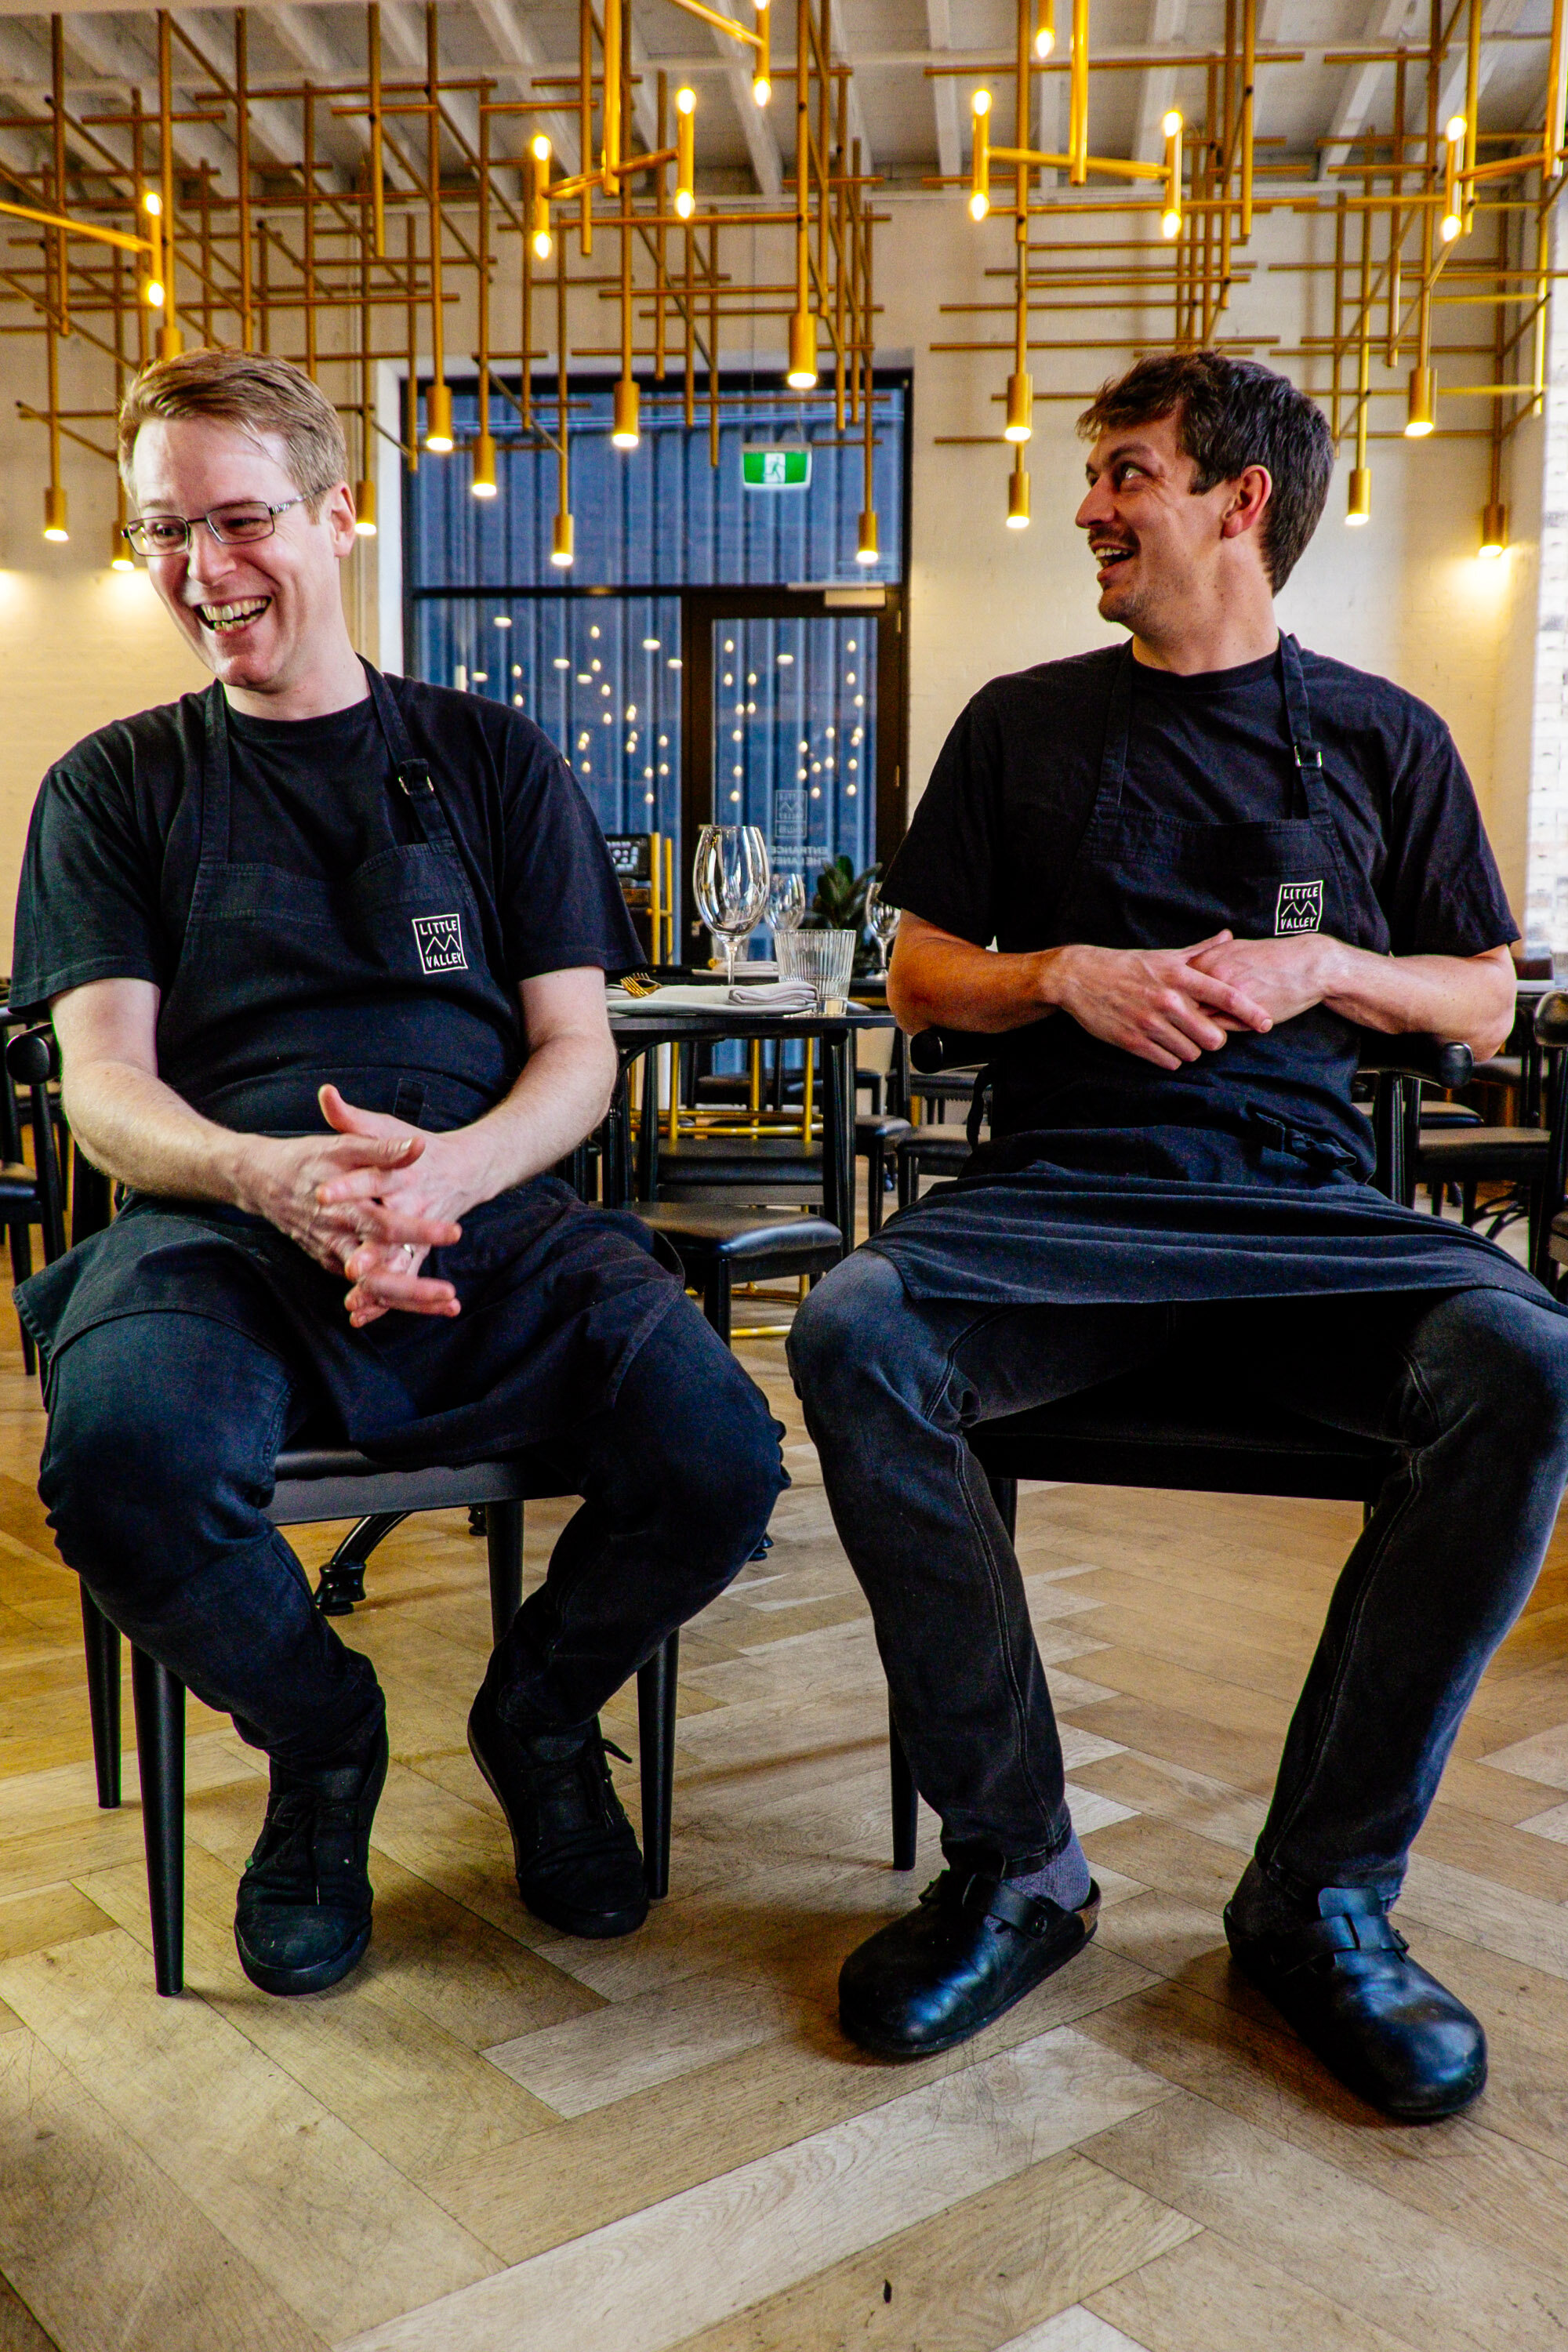 """""""""""You always need to move forward, and if it tastes good, it's good. Then Simon and I work on the plating and execution. It's important that our ideas will still flow in the kitchen when it's at its busiest."""" - Pictured: Sous Chef Simon Hanmer and Head Chef Jake Pregnell"""